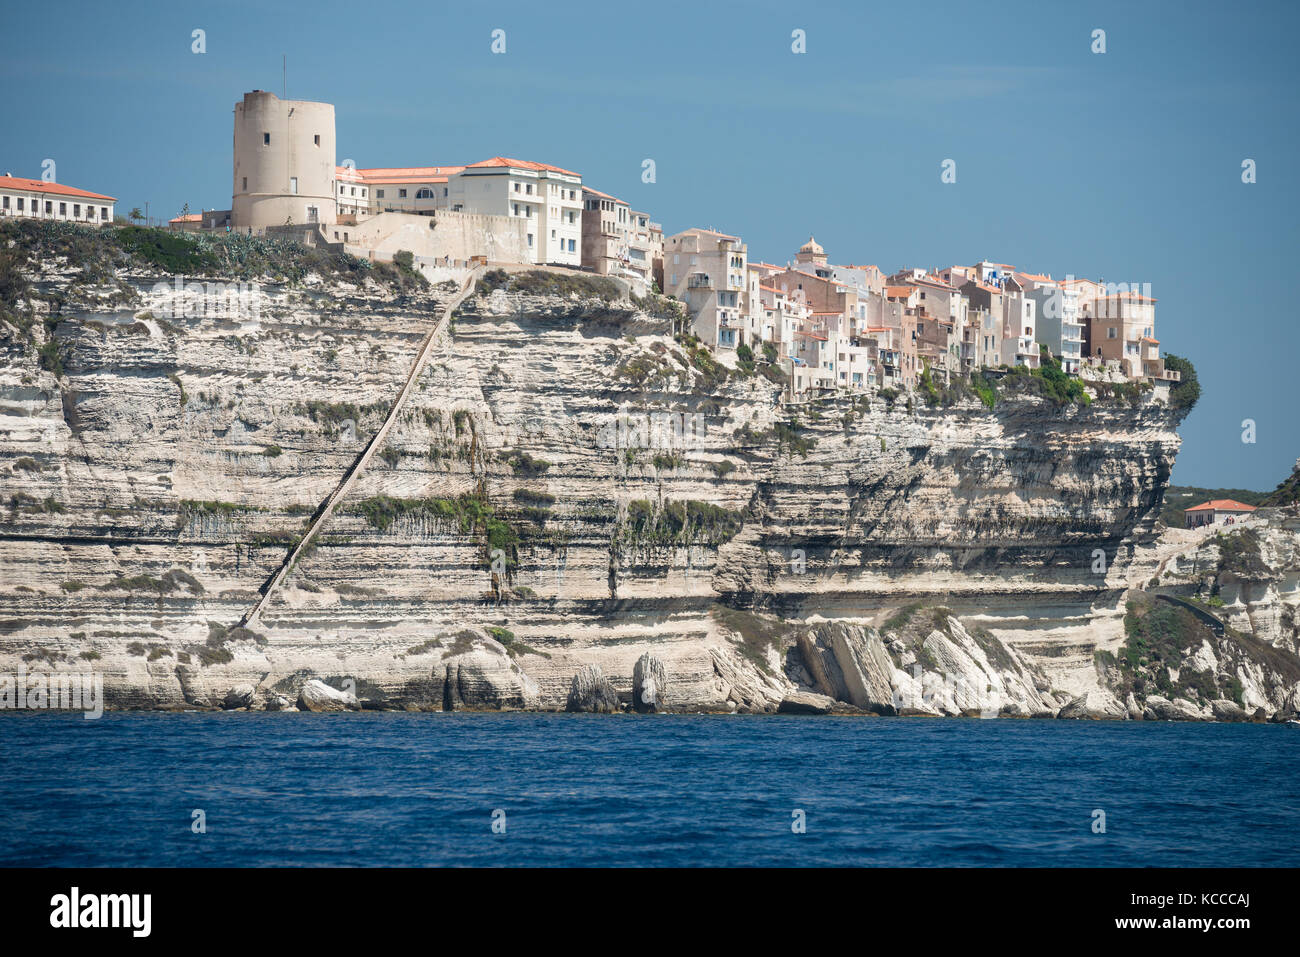 Bonifacio city and cliffs, Corsica island, France - Stock Image